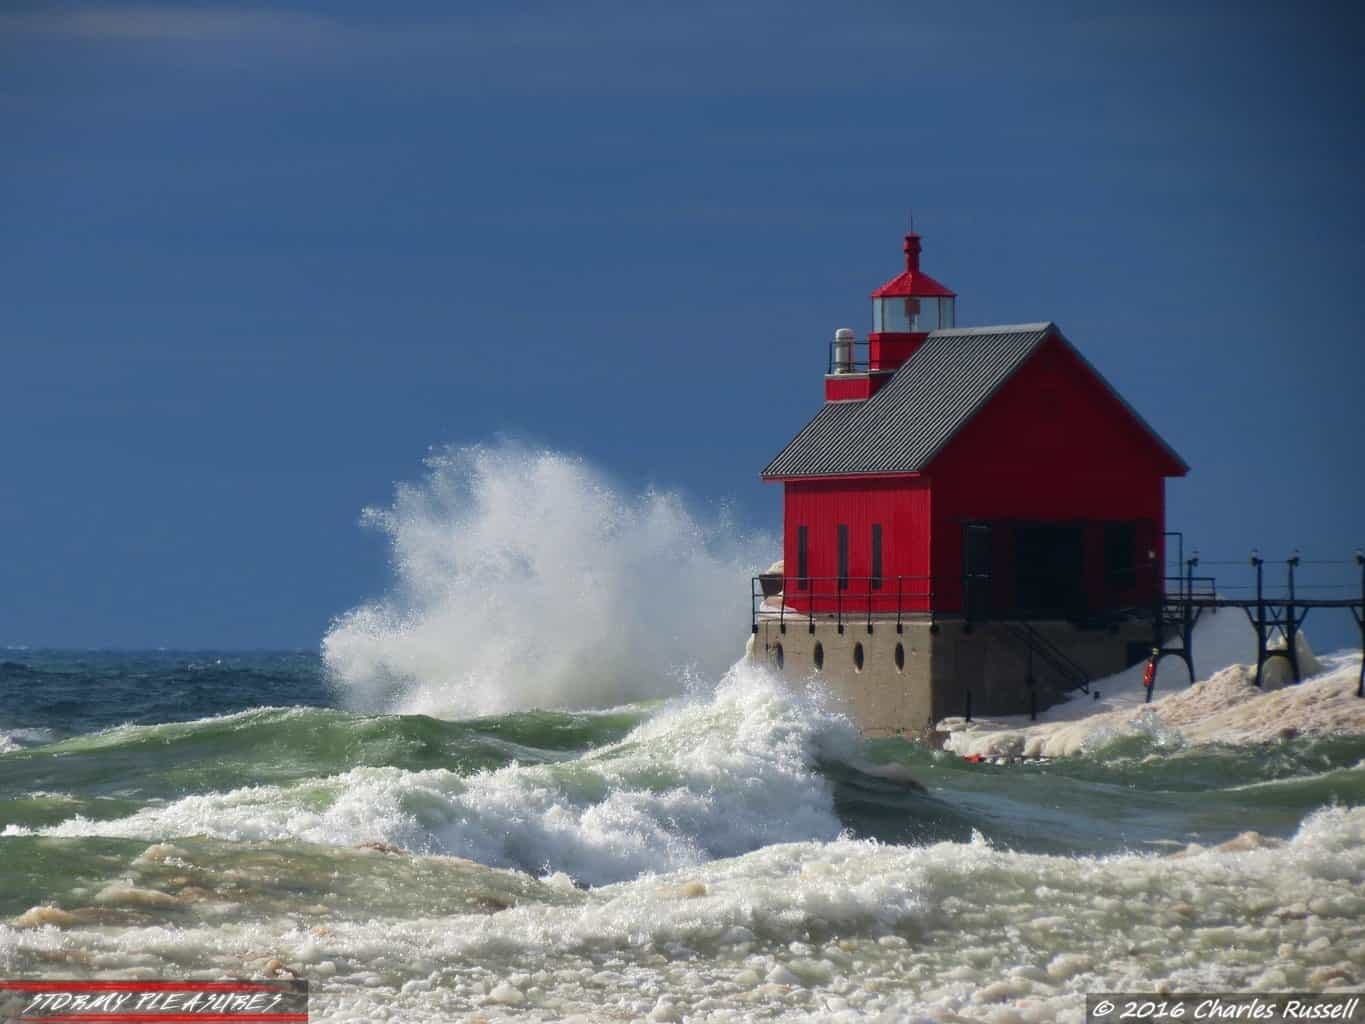 Lake Michigan was angry today!! I was down there shooting plenty of video and photos, here's one of them! A big wave smacked into the Grand Haven, MI Pier and Lighthouse! We had a gorgeous day, mid 50s with sunshine, and very windy. That was a perfect setup to head down to the lake shore to get some epic shots. I'll post more over the weekend.